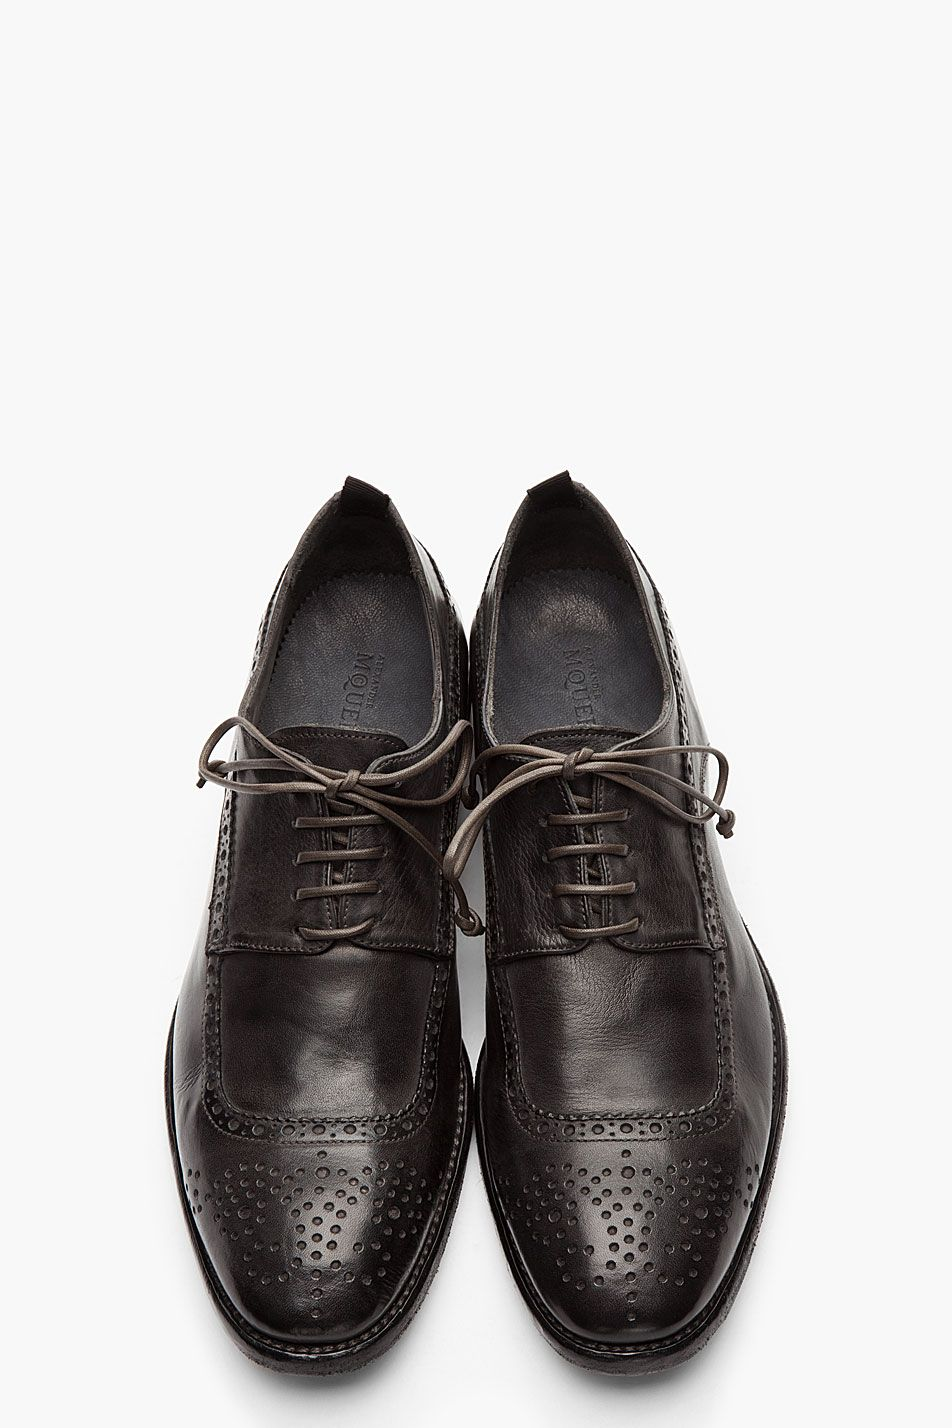 ALEXANDER MCQUEEN Black Texas Dyed longwing brogues